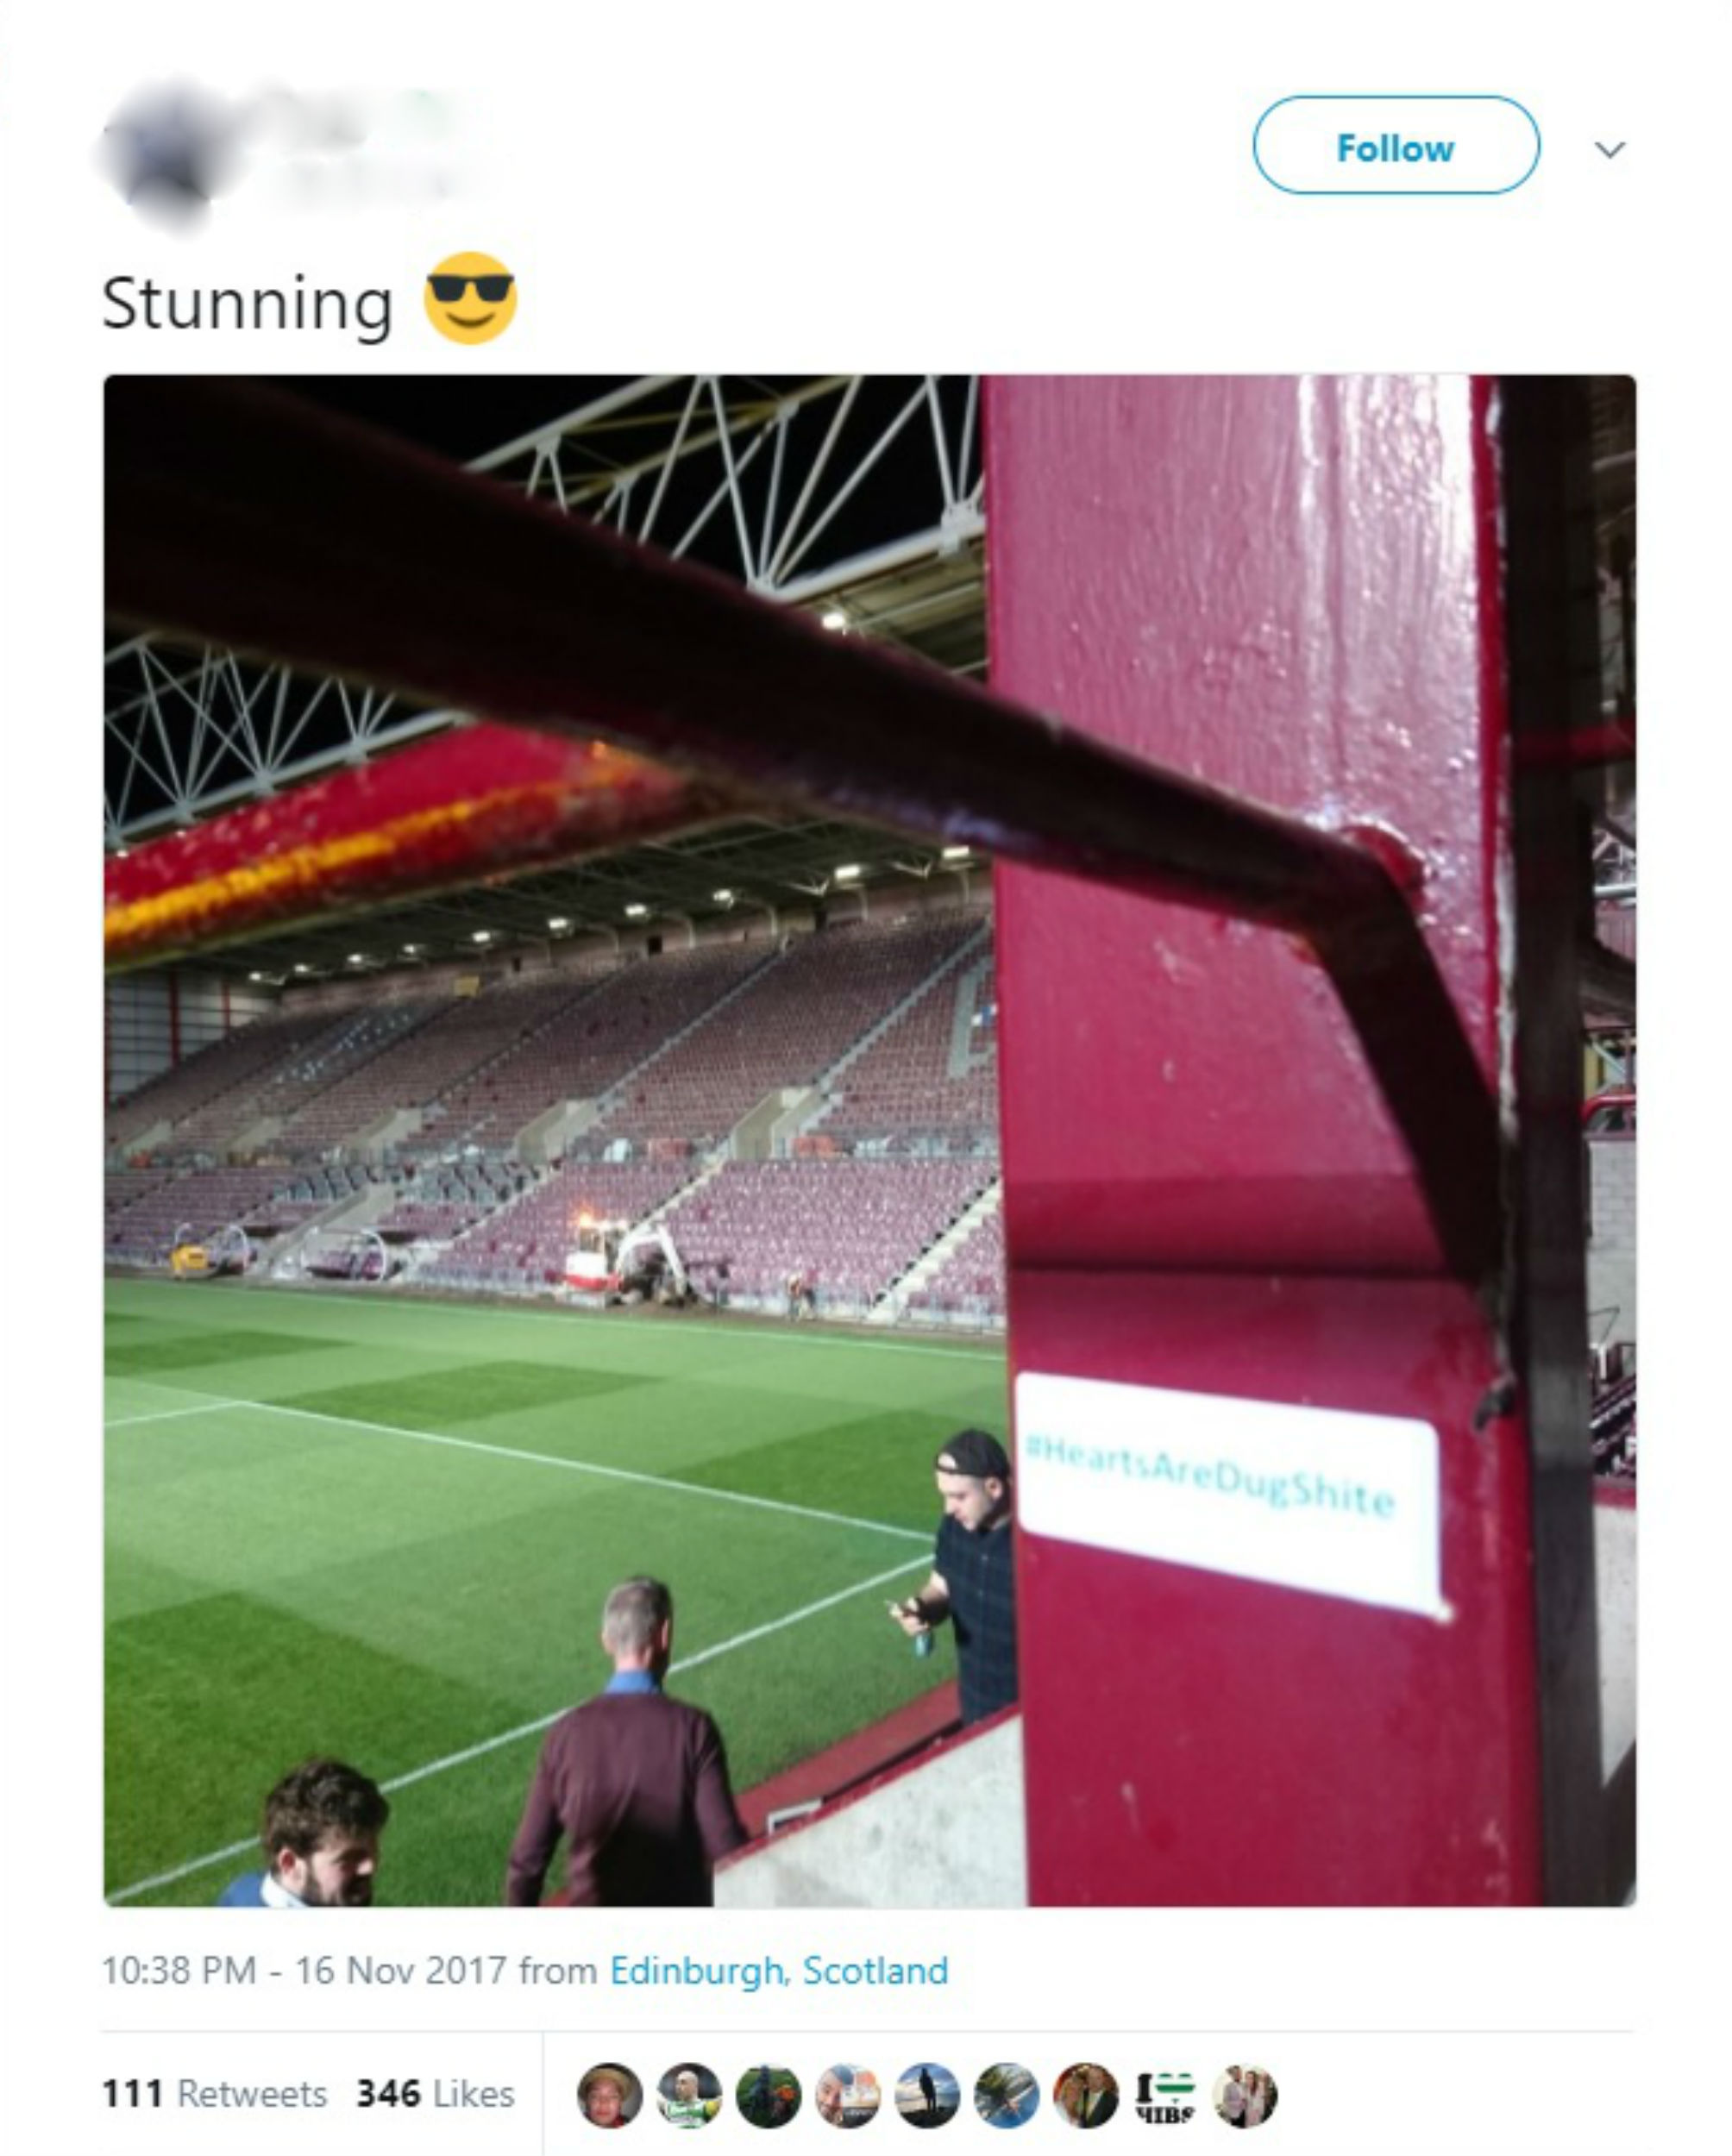 SNeaky hib fan managed to get in offensive sign about rivals during revamp-Scottish Football News